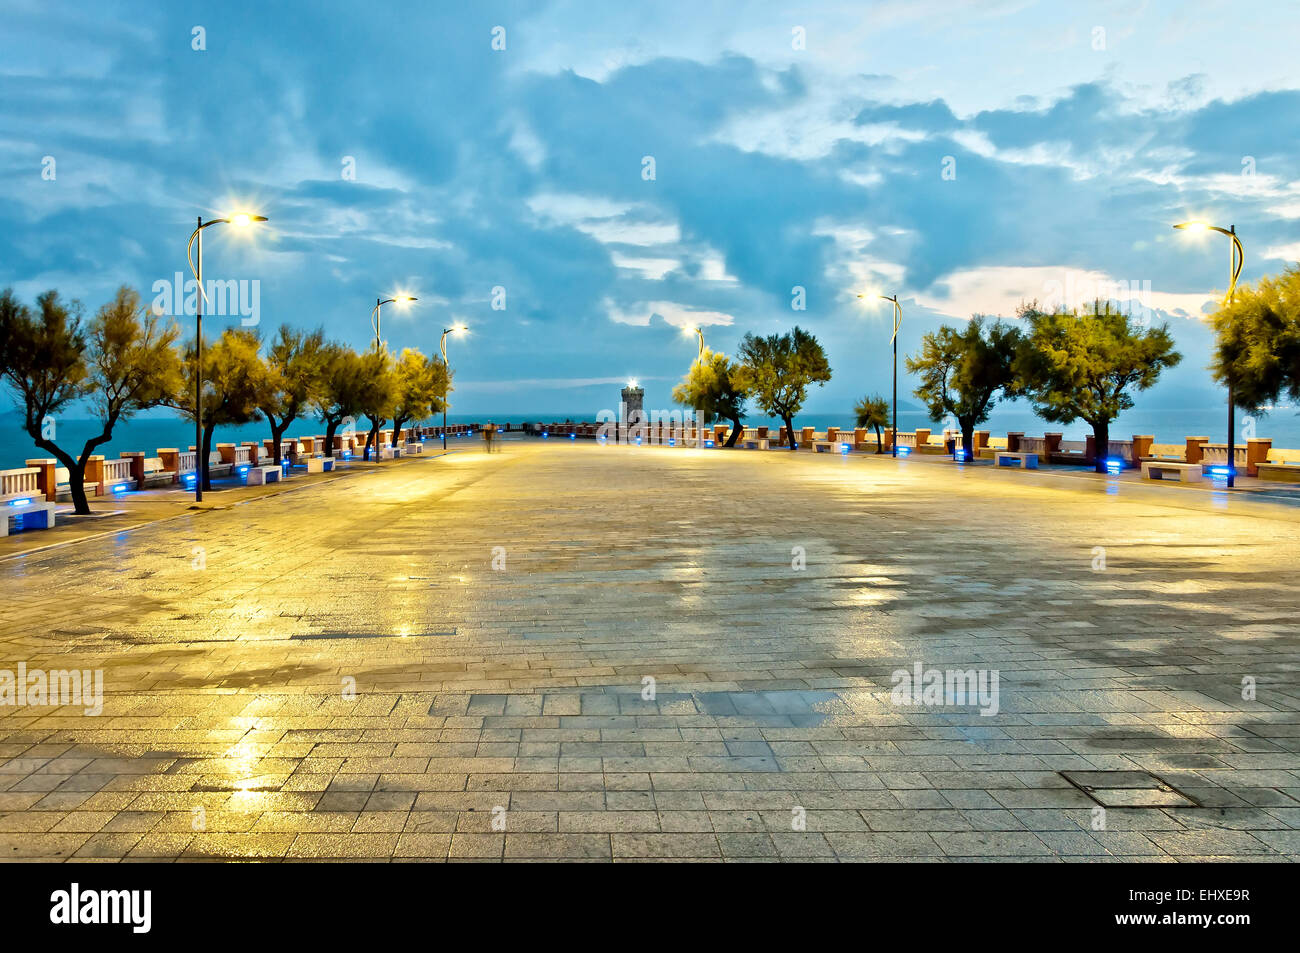 Mediterranean sea with cloudy sky seen from Piazza Bovio in Piombino town - Tuscany, Italy - Stock Image